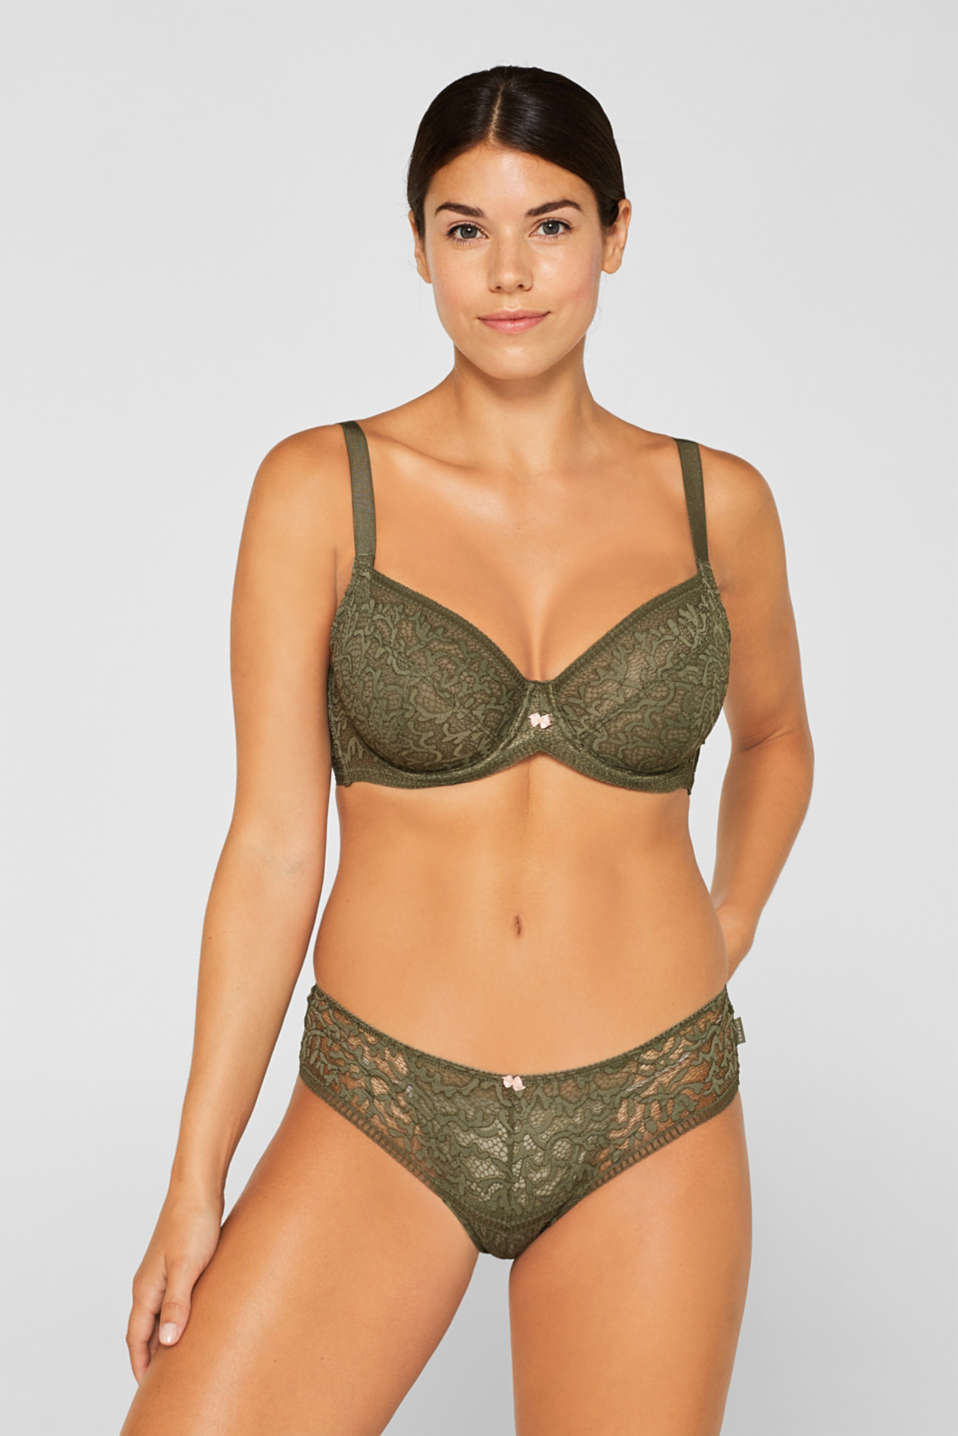 Unpadded underwire bra in lace, made especially for larger cup sizes, OLIVE, detail image number 0